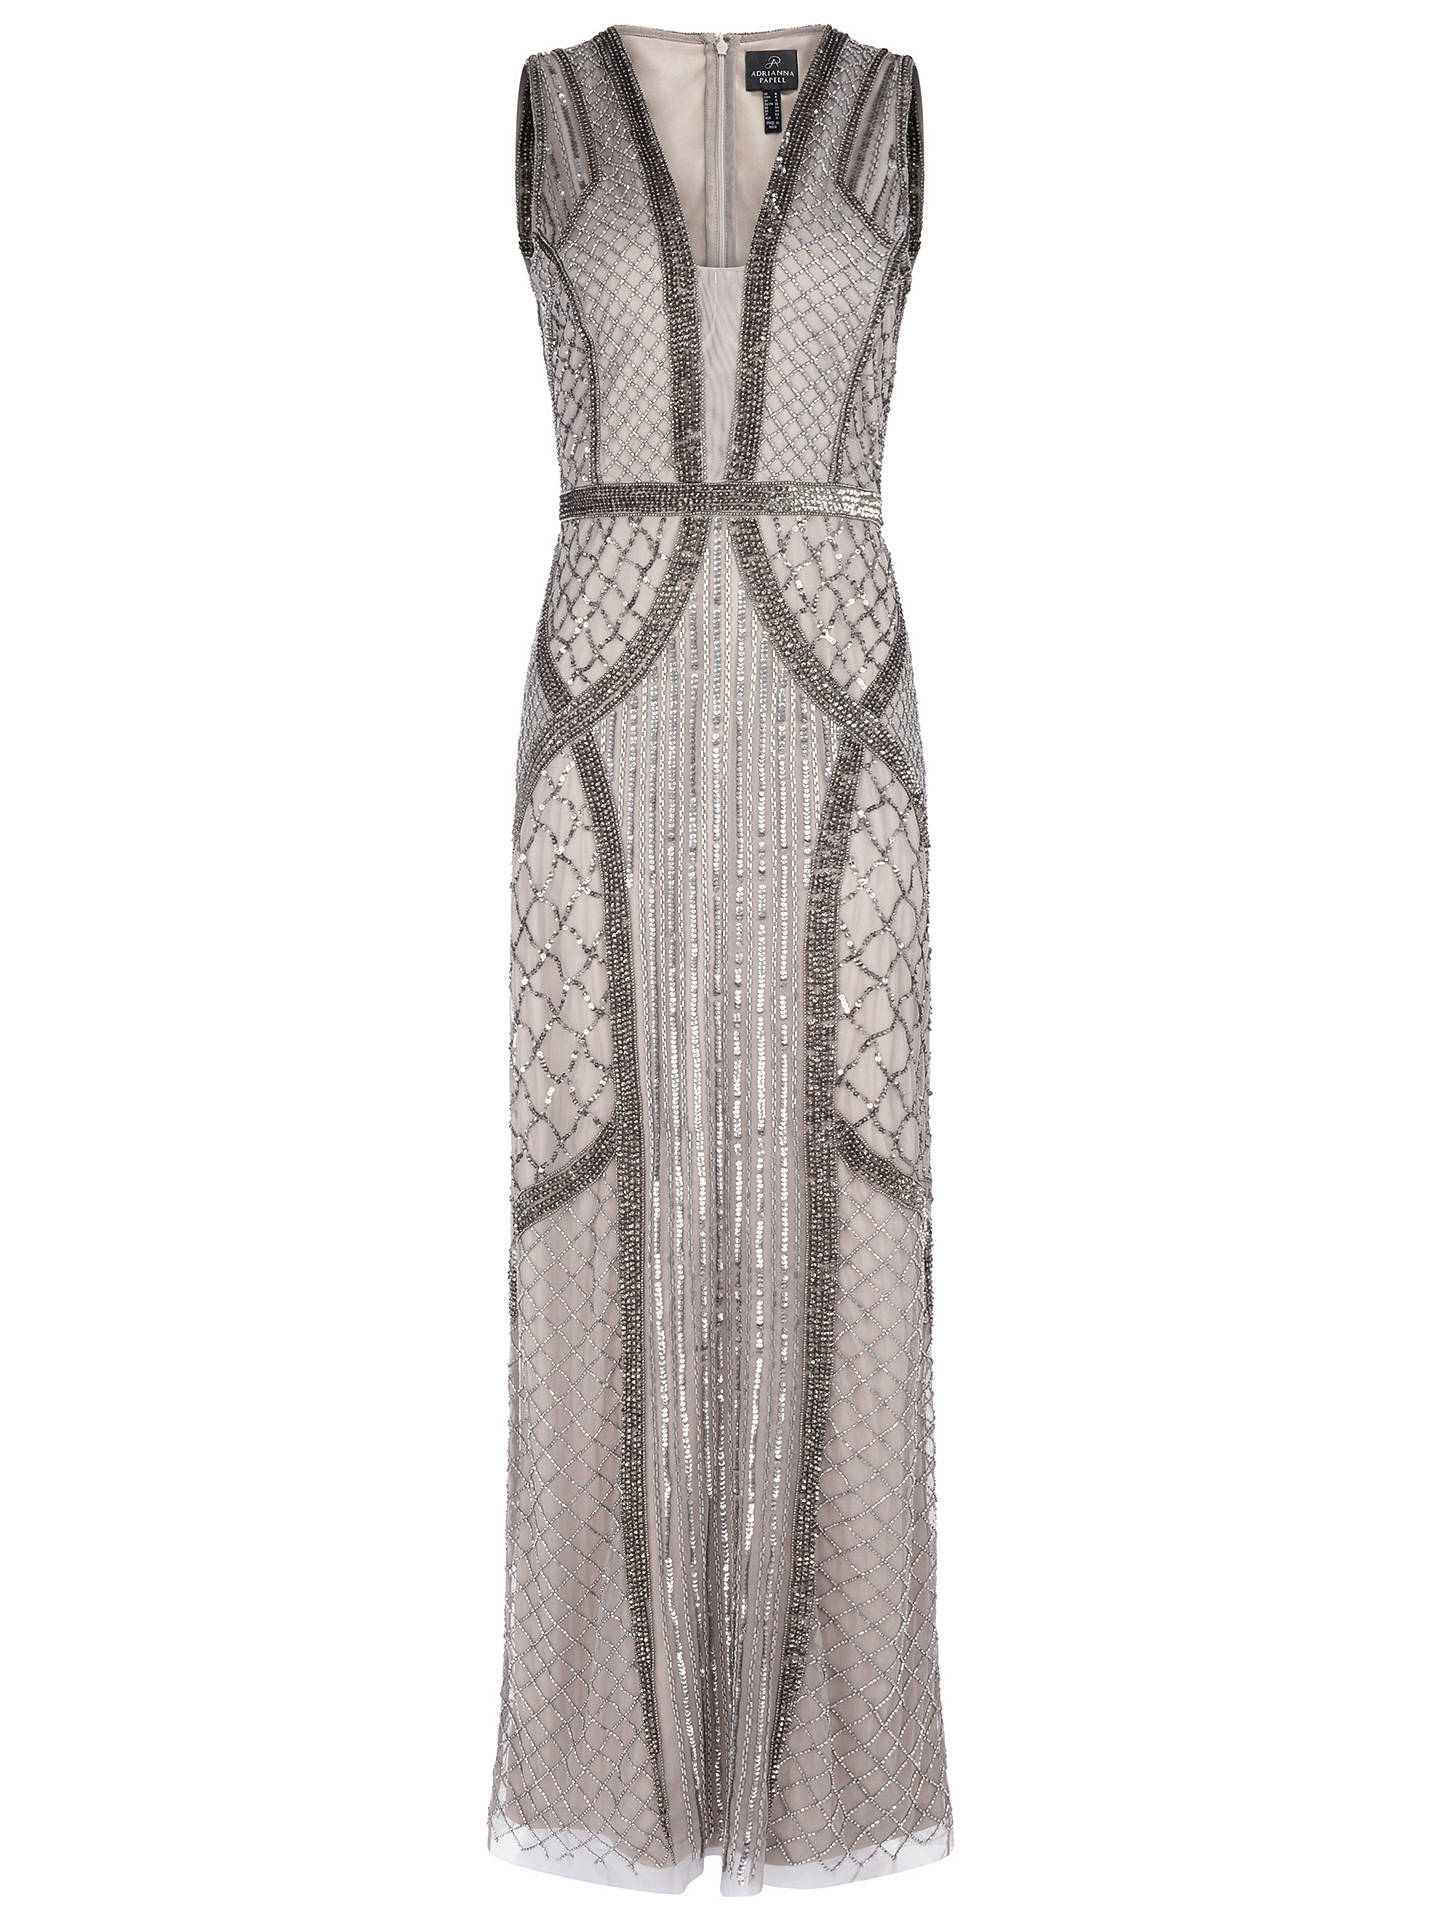 BuyAdrianna Papell Beaded Column Dress, Platinum, 6 Online at johnlewis.com